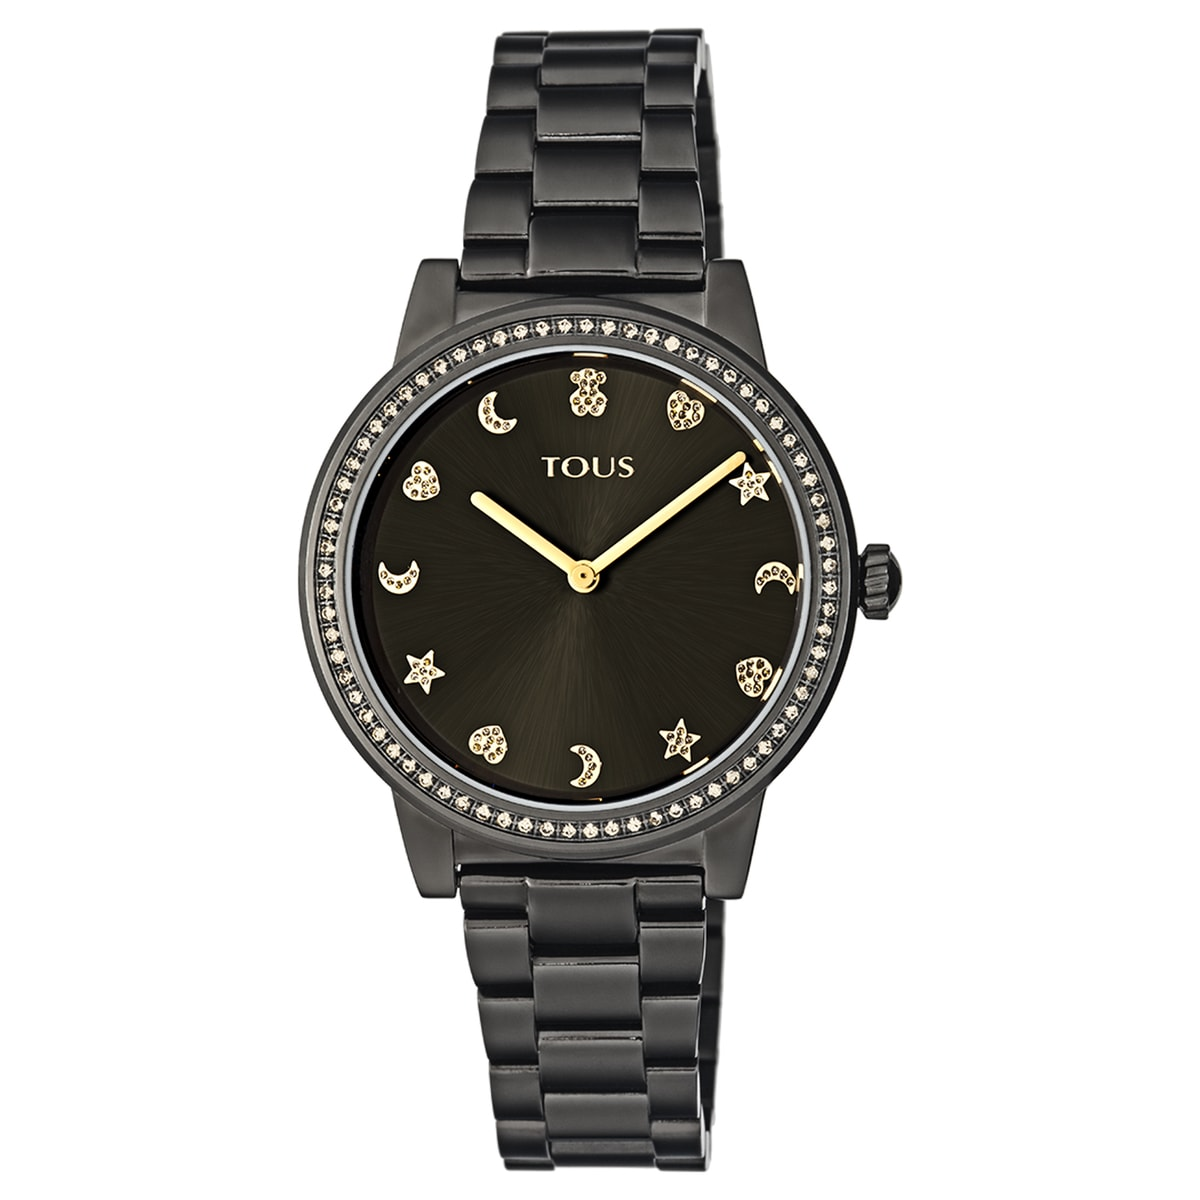 Black IP Steel Nocturne Watch with bezel with cubic zirconia stones